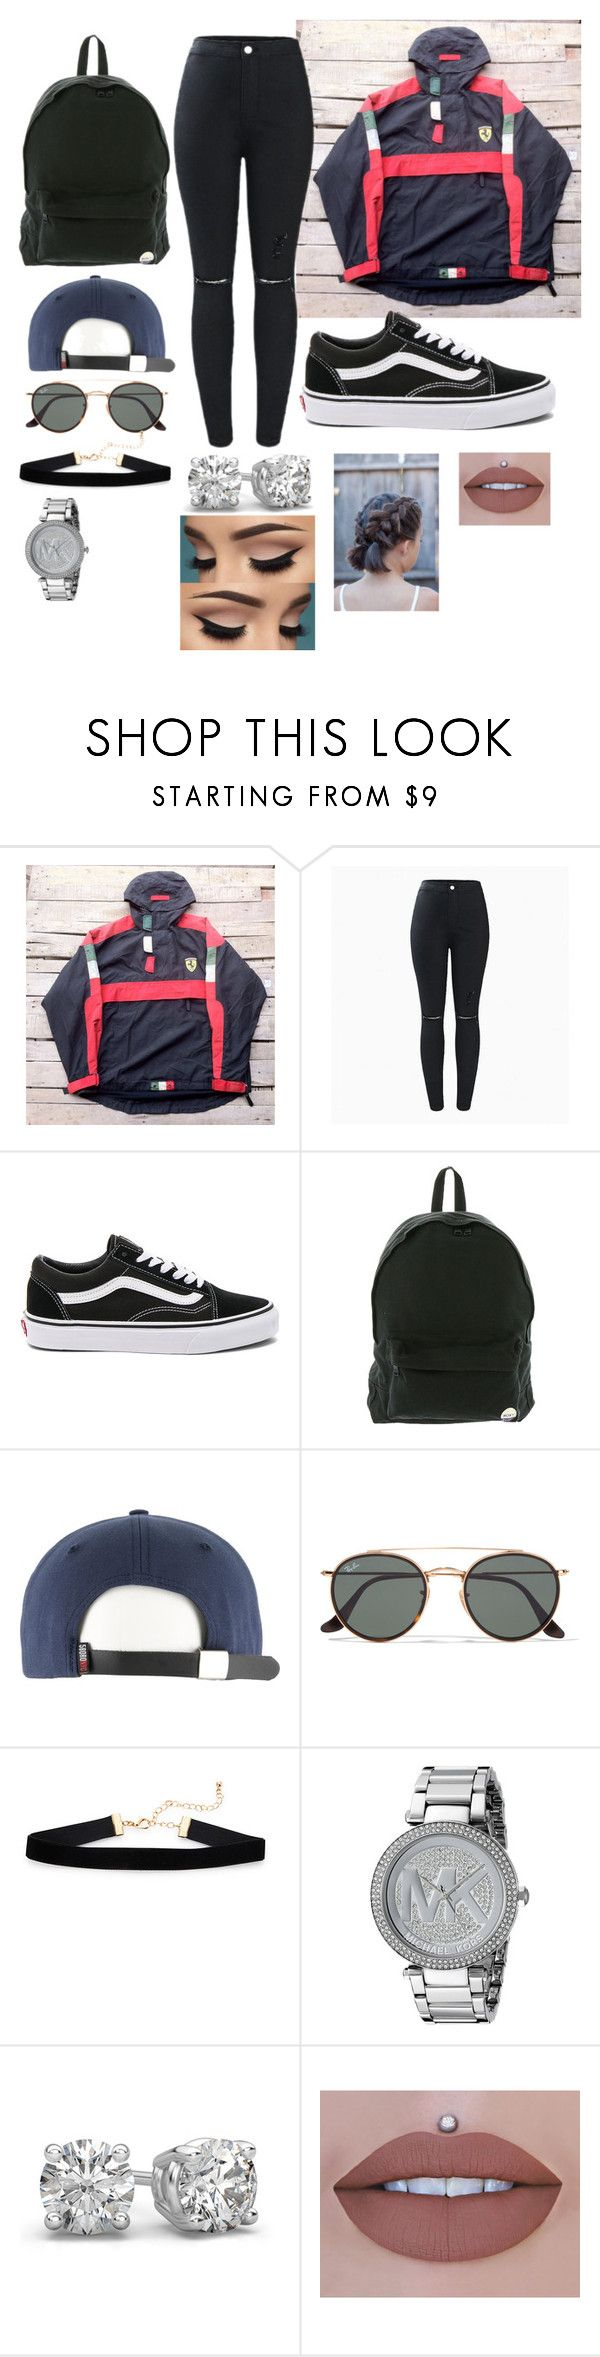 """""""Untitled #5192"""" by originaltwfan ❤ liked on Polyvore featuring Ferrari, Vans, Roxy, Ray-Ban and Michael Kors"""